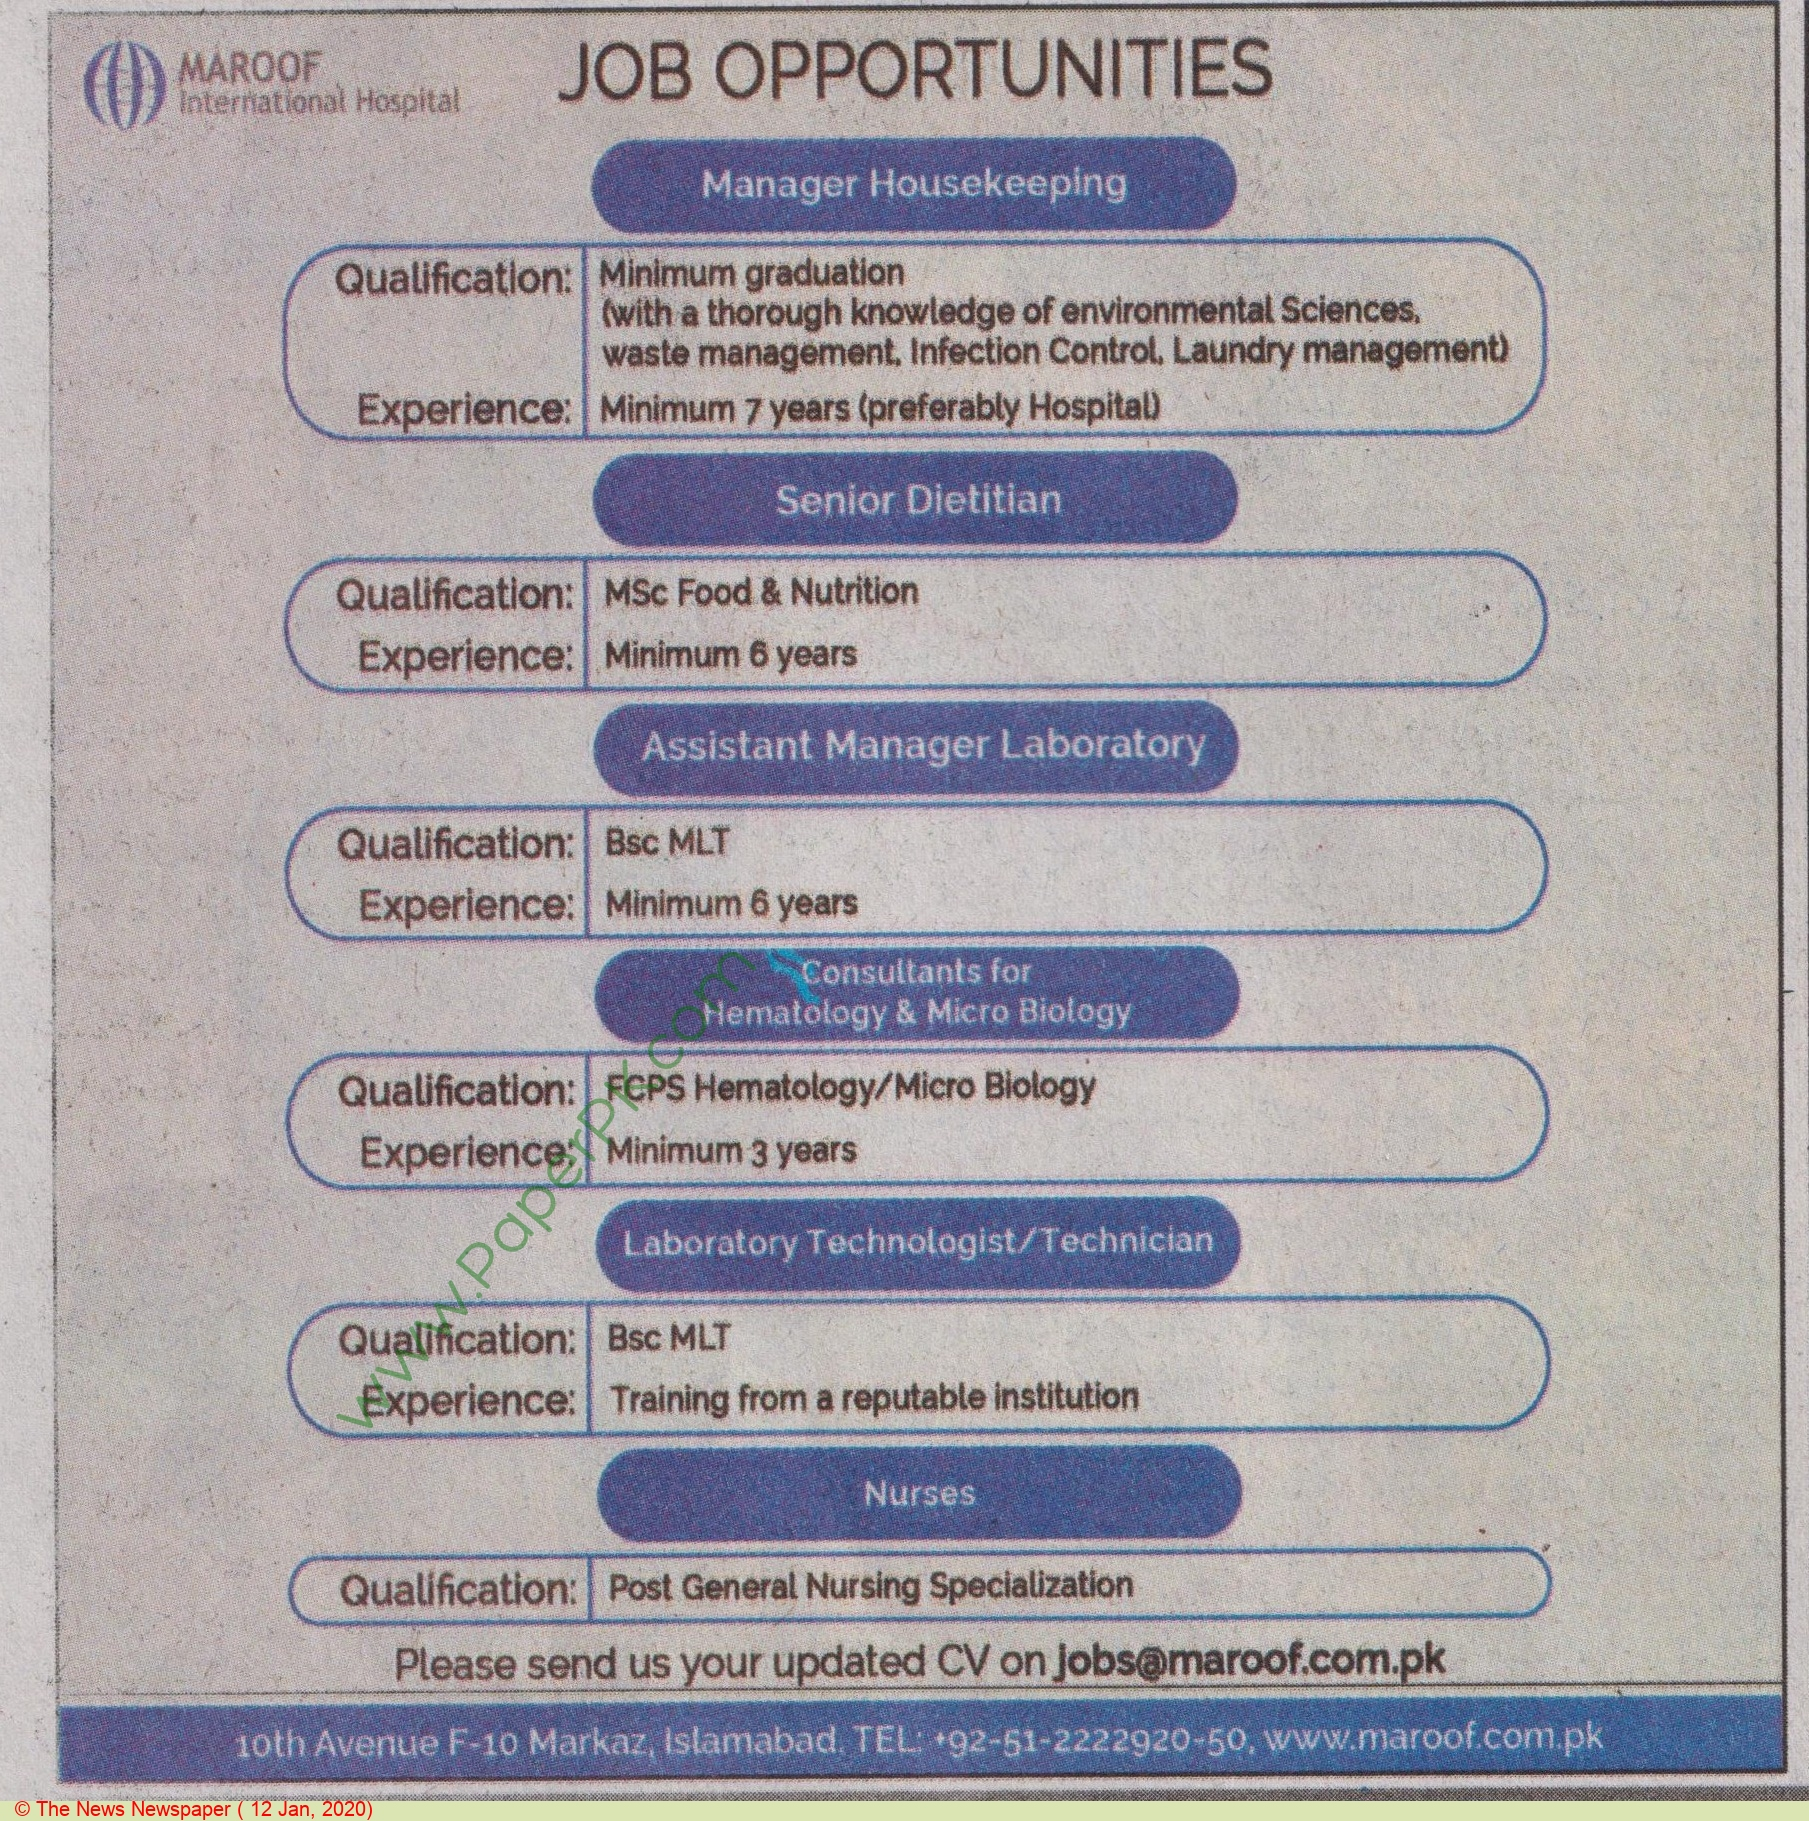 Maroof International Hospital jobs newspaper ad for Manager Housekeeping in Islamabad